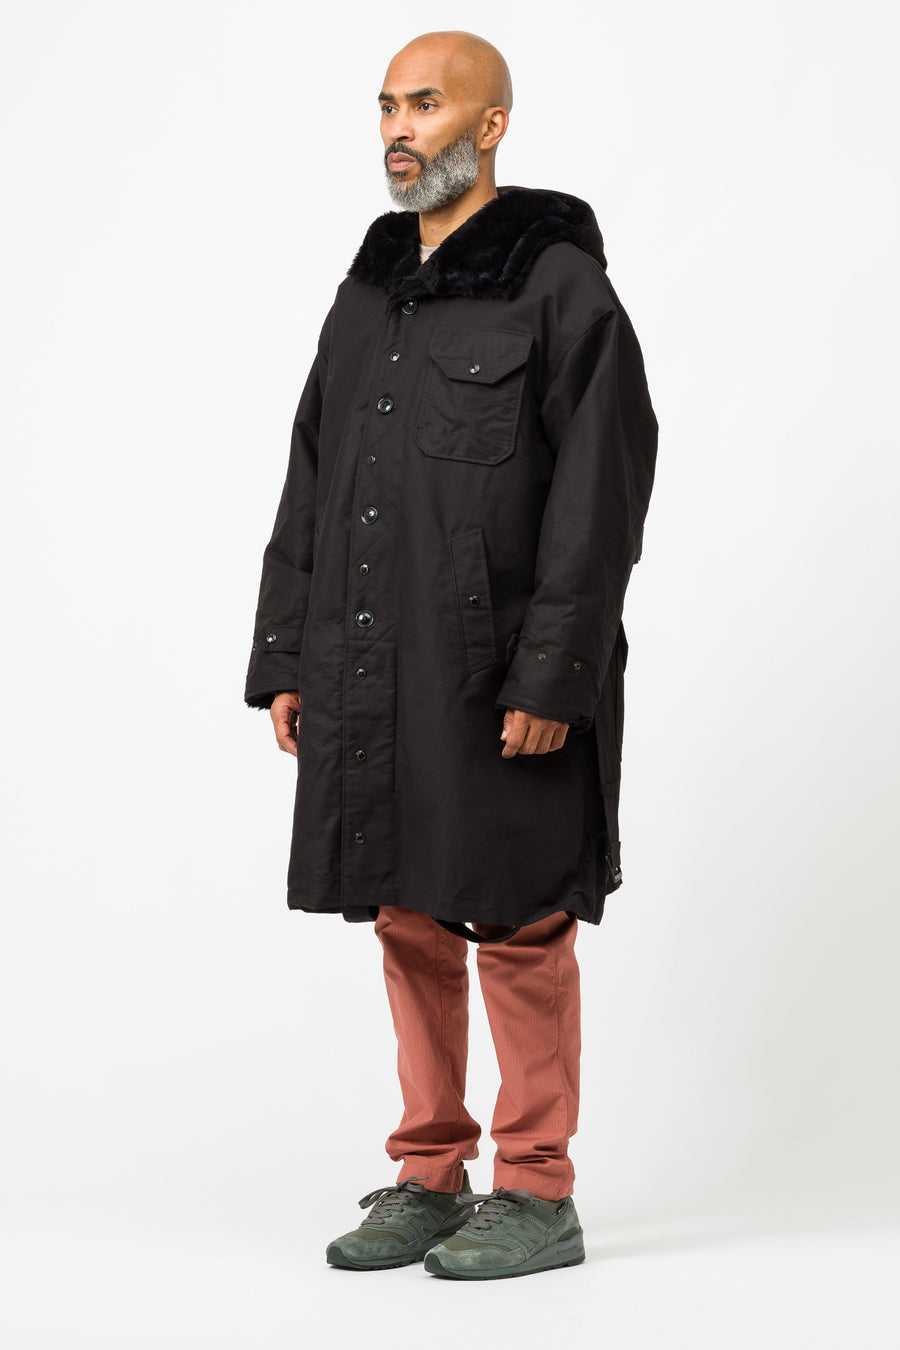 Engineered Garments Coastline Parka in Black - Notre